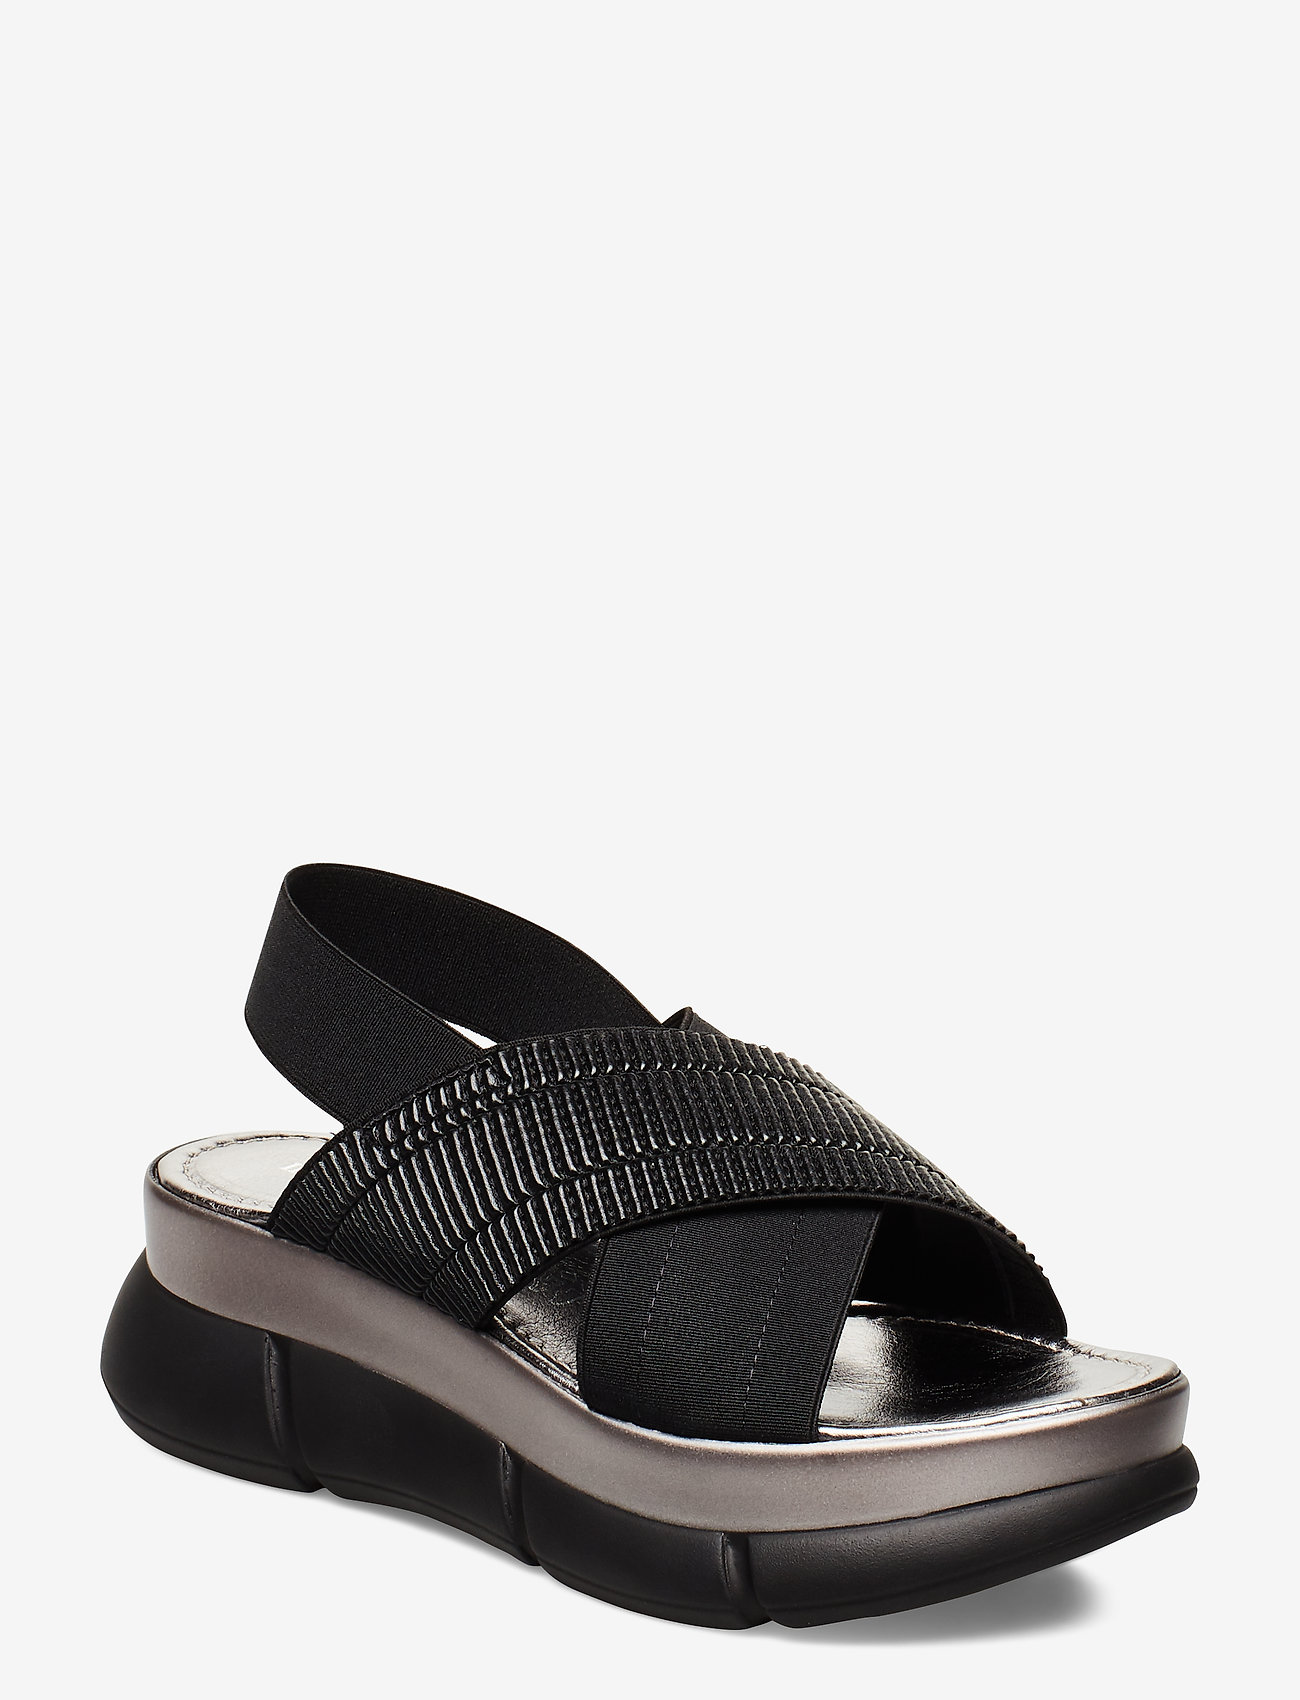 Ilse Jacobsen - SANDALS - sandales - black - 0